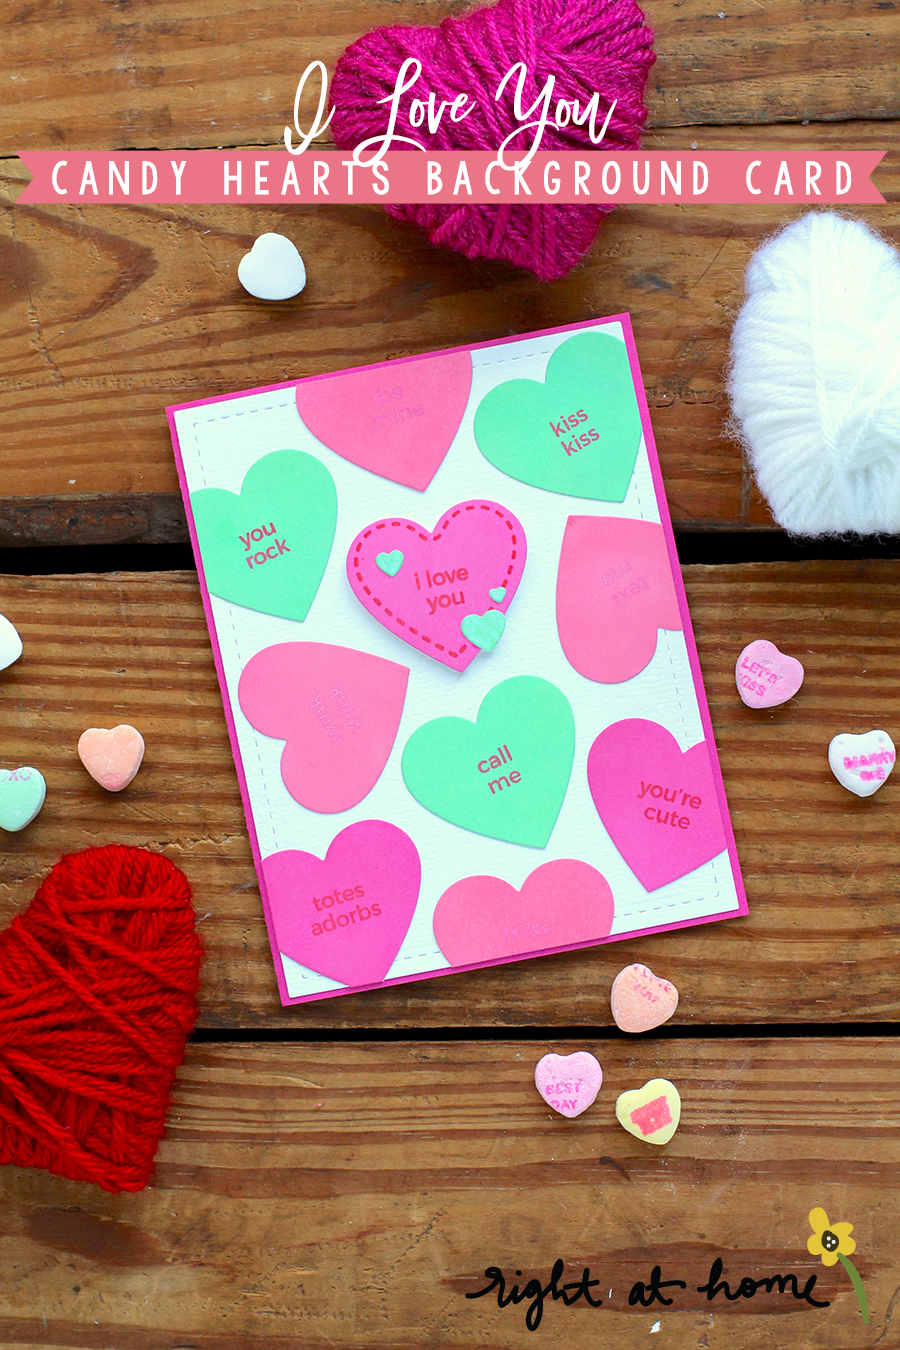 Day #6: I Love You Candy Hearts Background Folded Airplane Die Set Card // rightathomeshop.com/blog